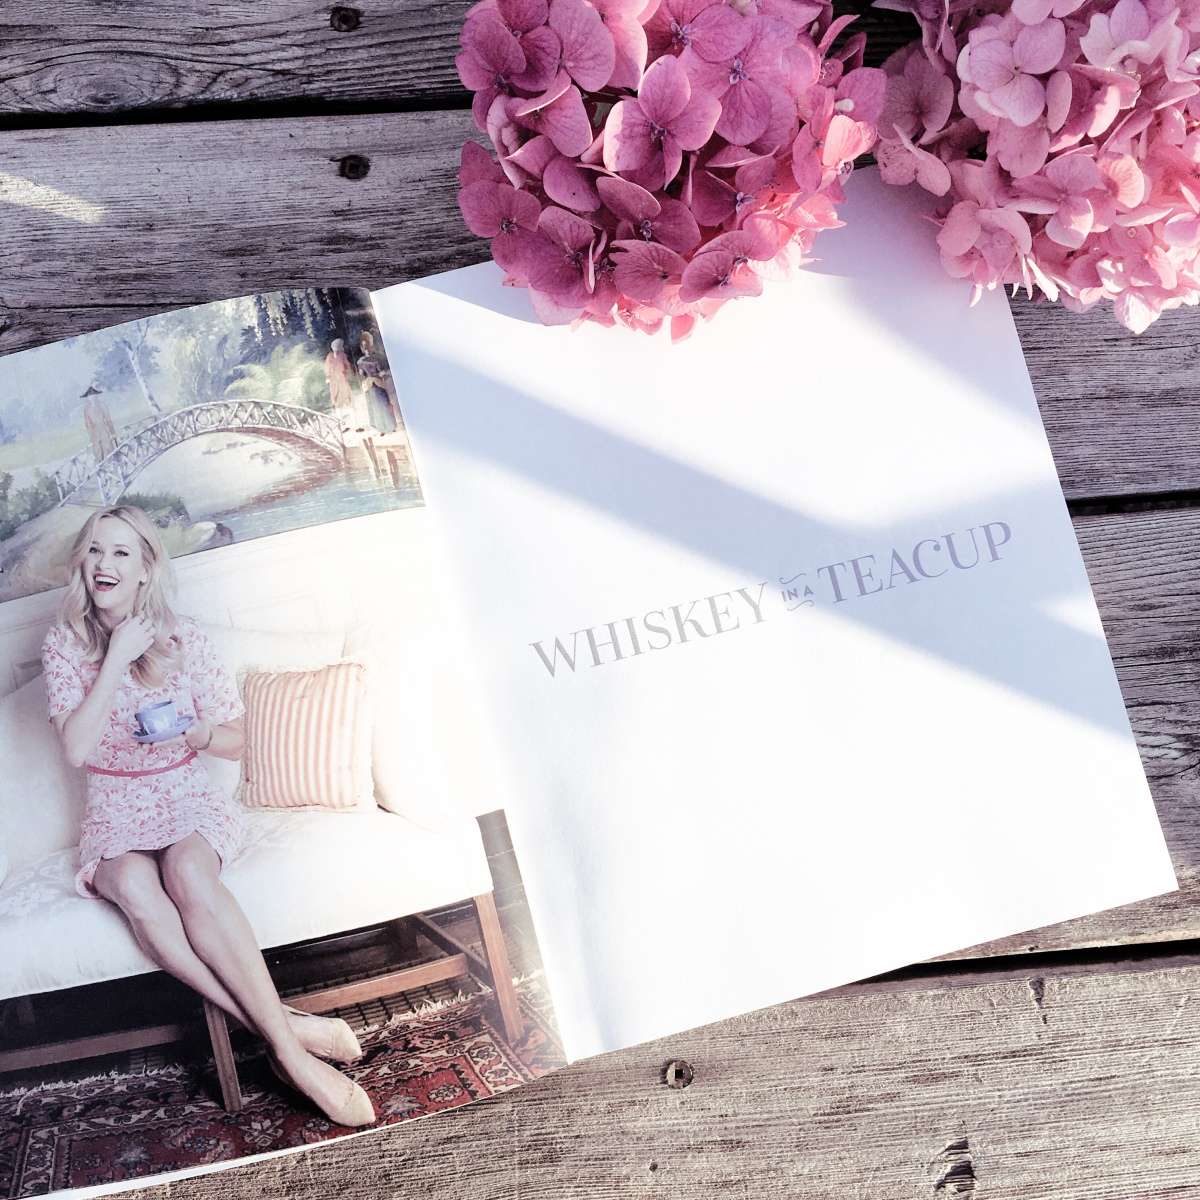 'Whiskey in a Tea Cup' by Reese Witherspoon Book & Tote Giveaway! #GIVEAWAY